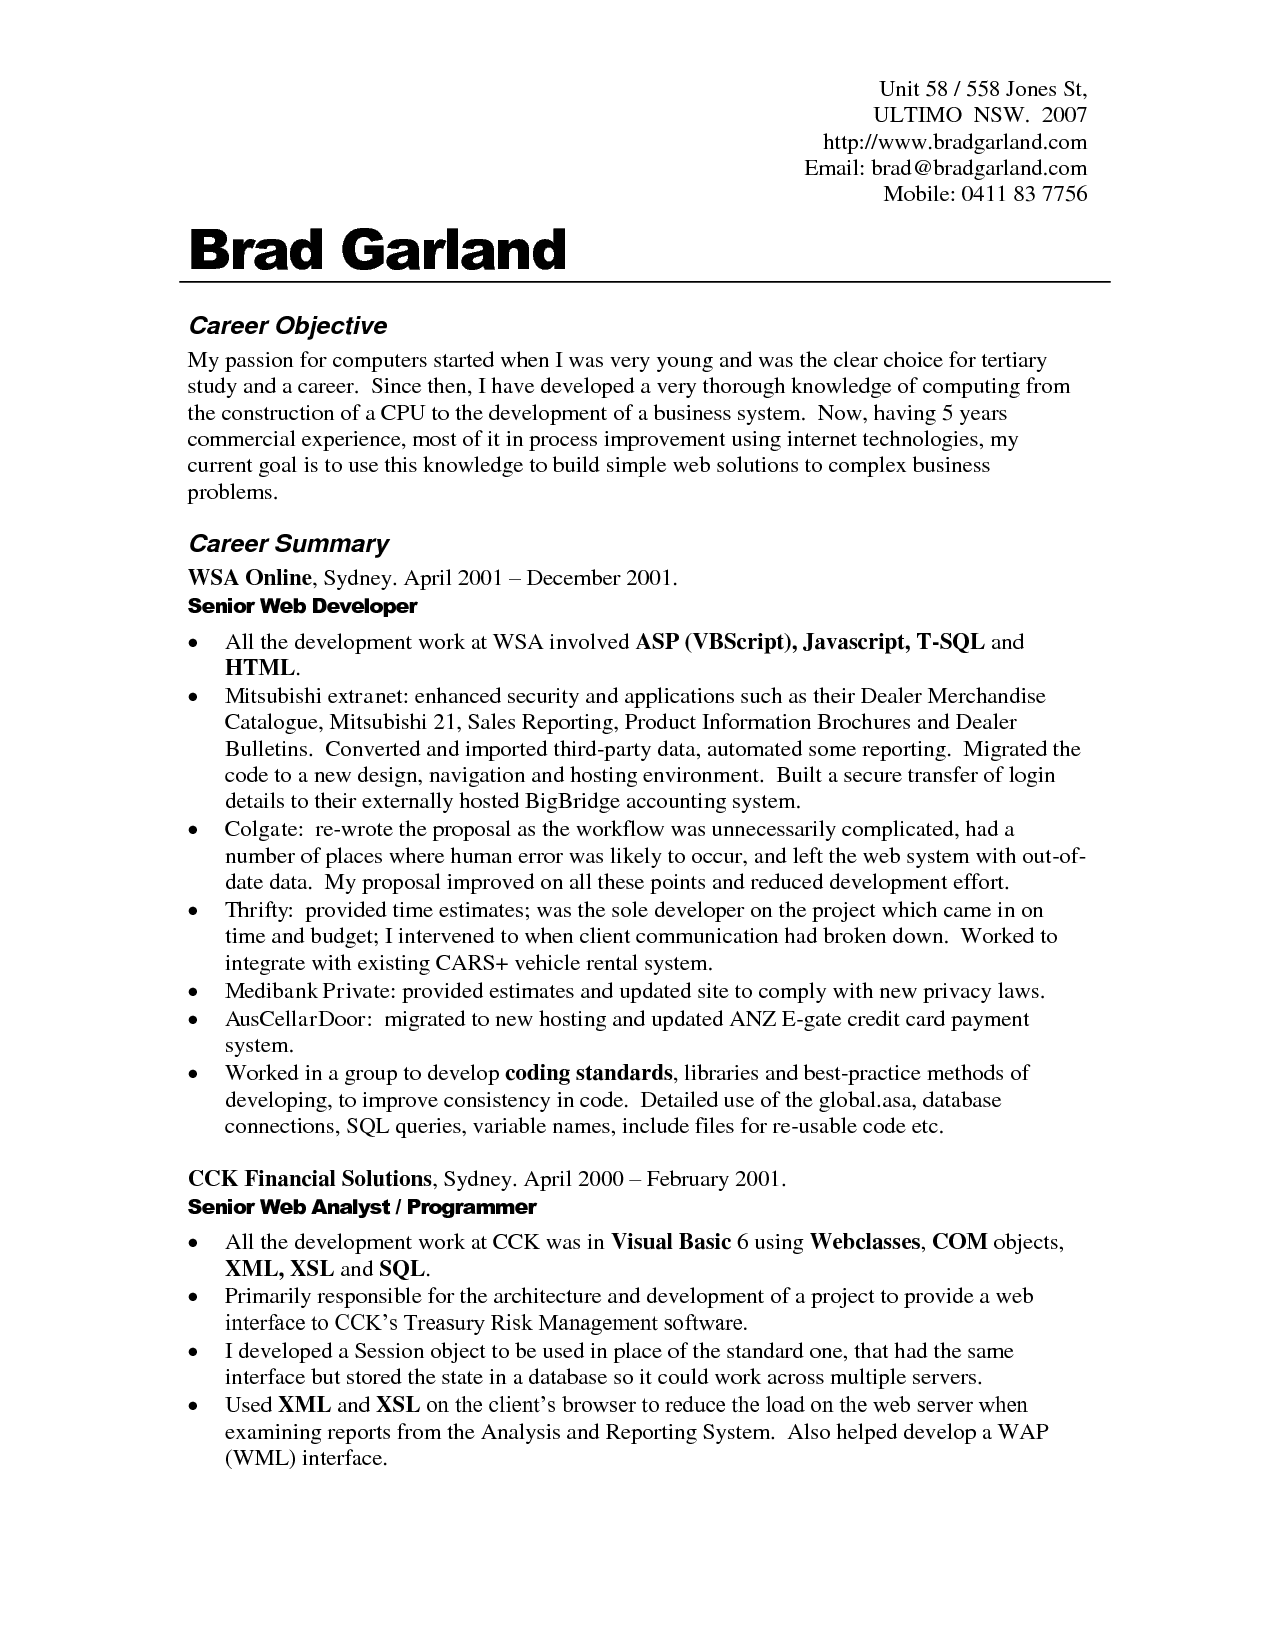 career objective for resume and career objectives statement senior web developer - Software Resume Objective